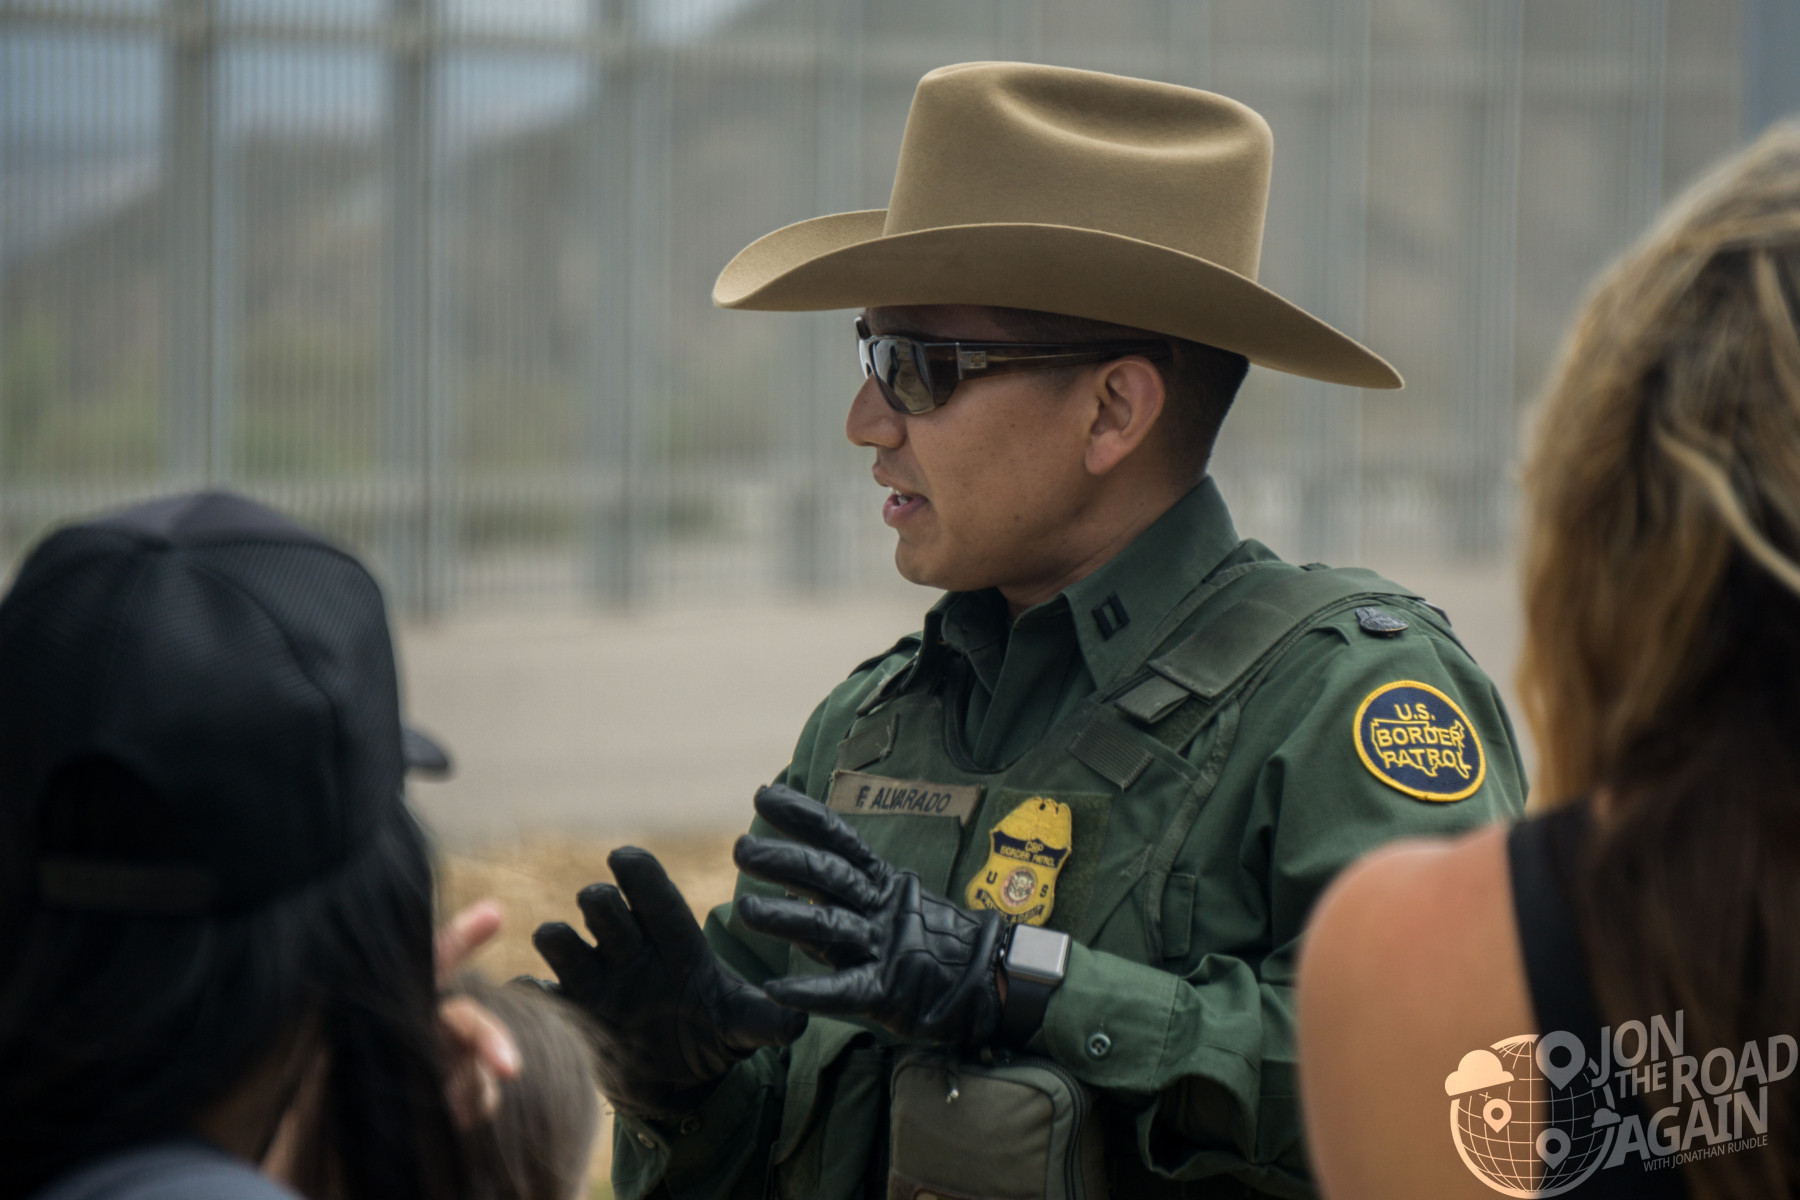 Border patrol officer